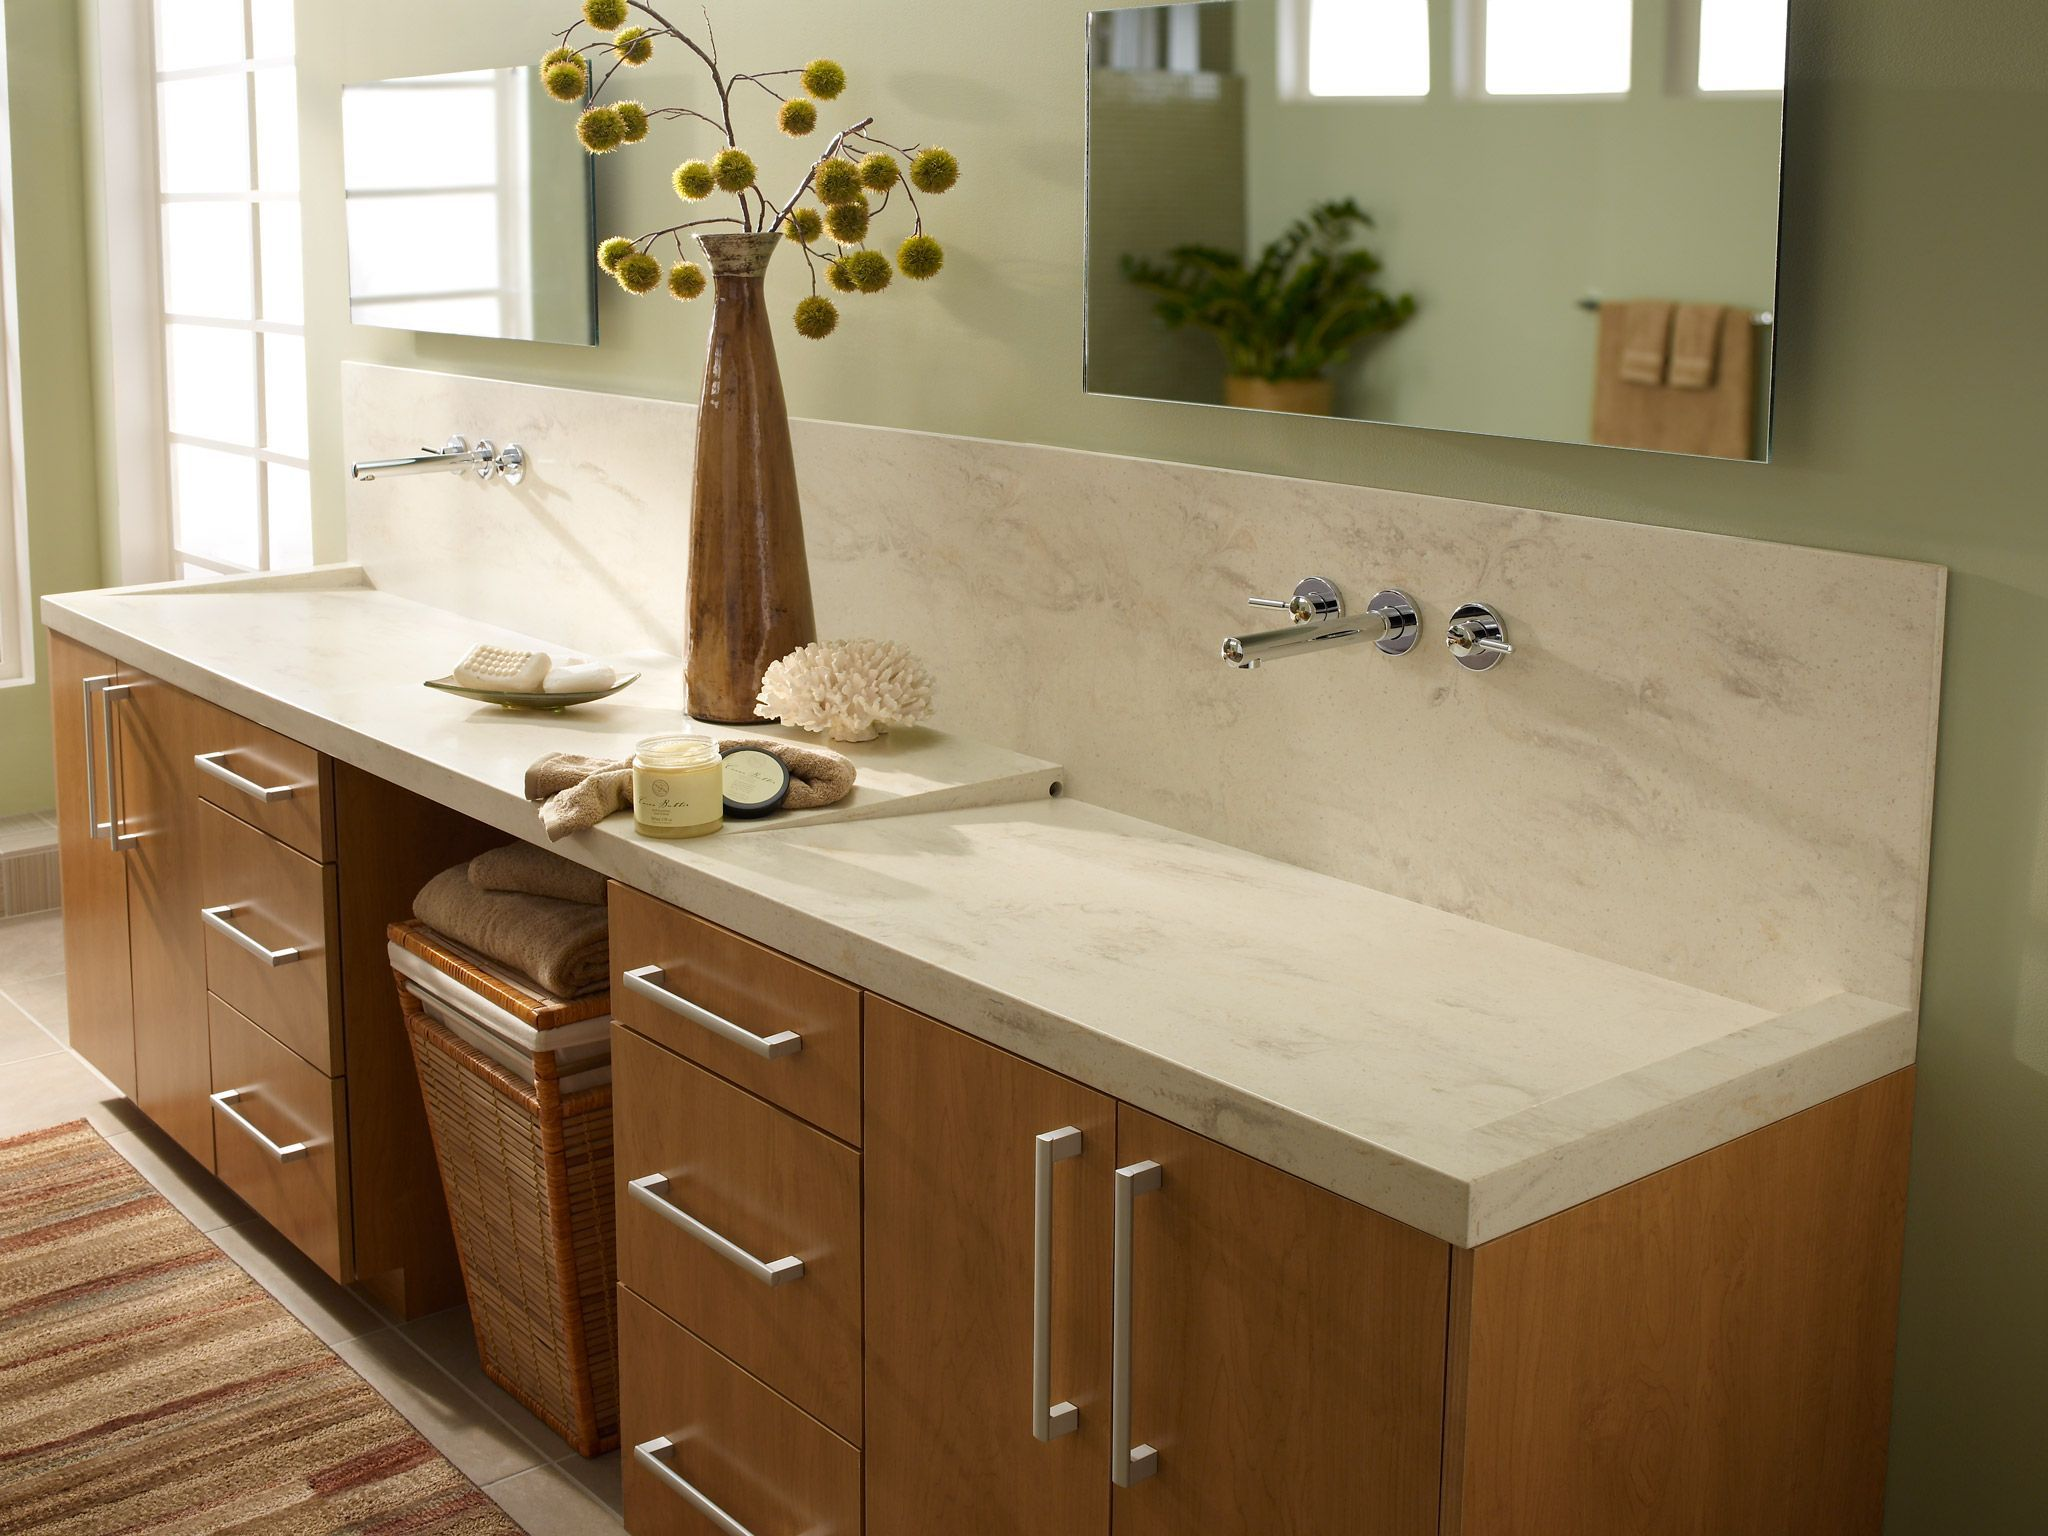 Clam Shell Solid Surface From Corian Design Corian Bathroom Countertops Bathroom Countertops